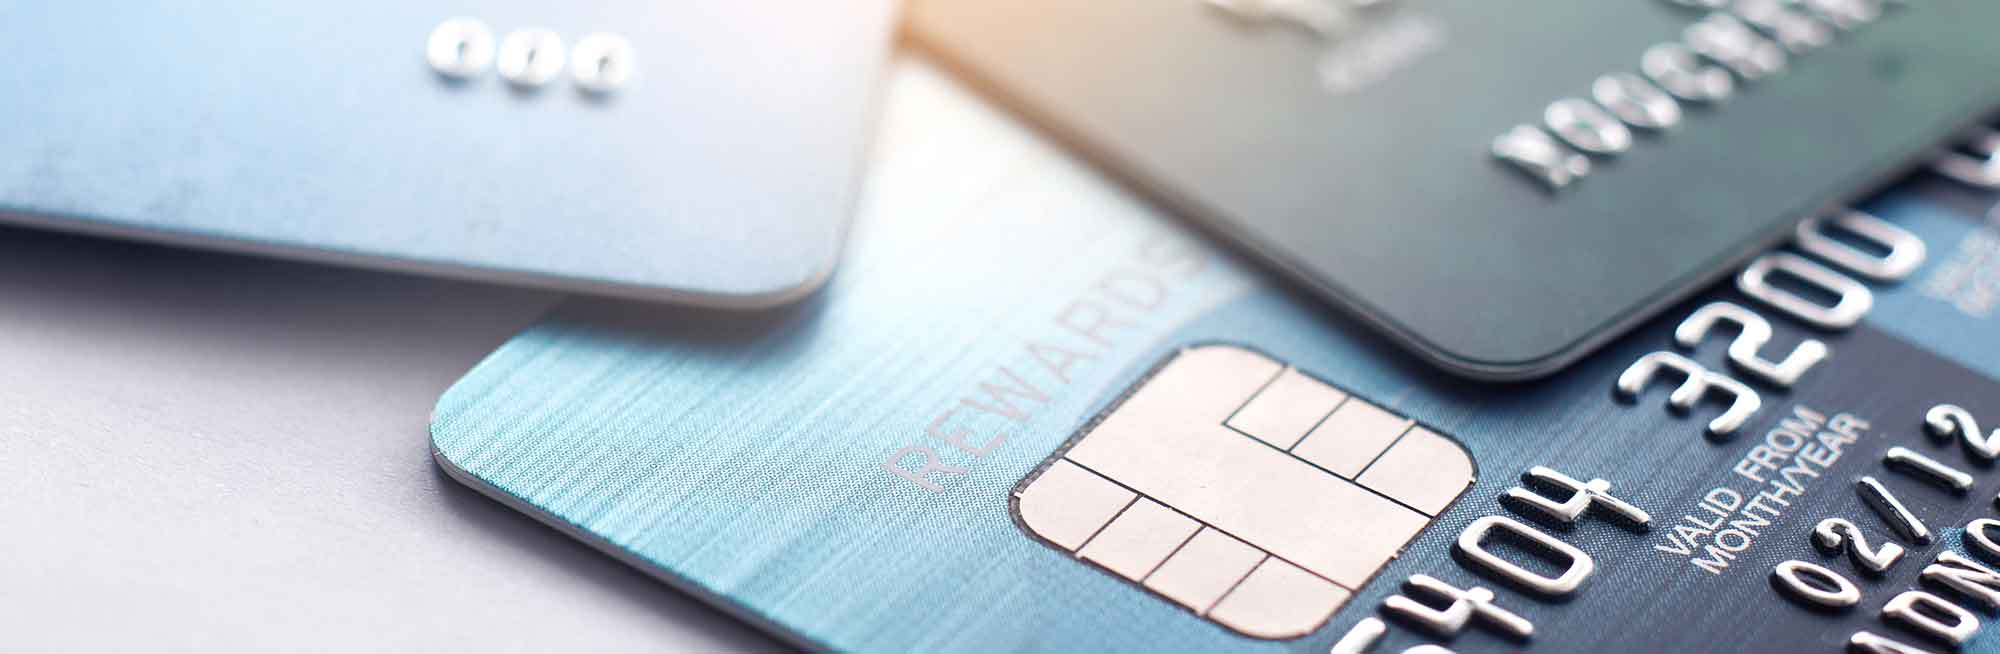 6 Reasons to Consider Wireless Point-of-Sale EMV Equipment